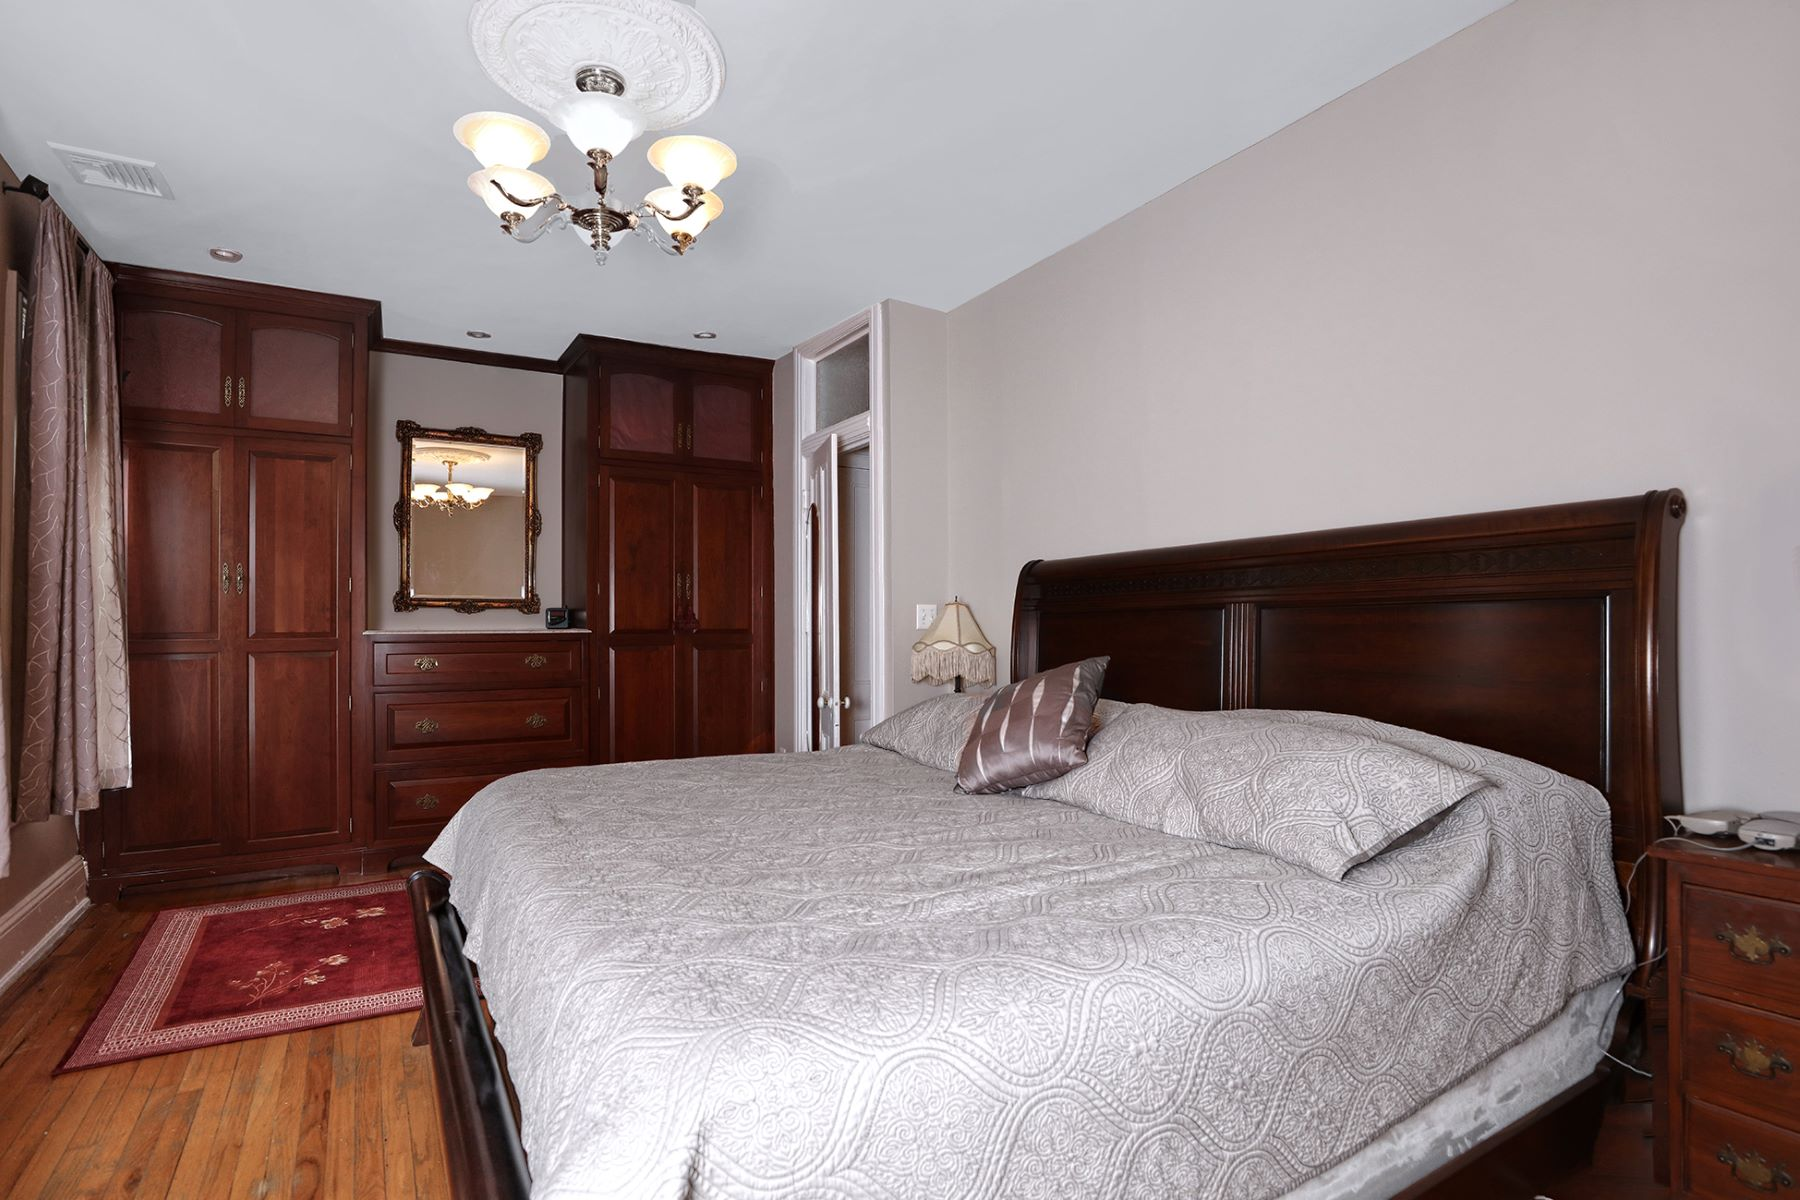 Additional photo for property listing at Full Of Welcome Features 72 Delaware Avenue, Lambertville, New Jersey 08530 United States